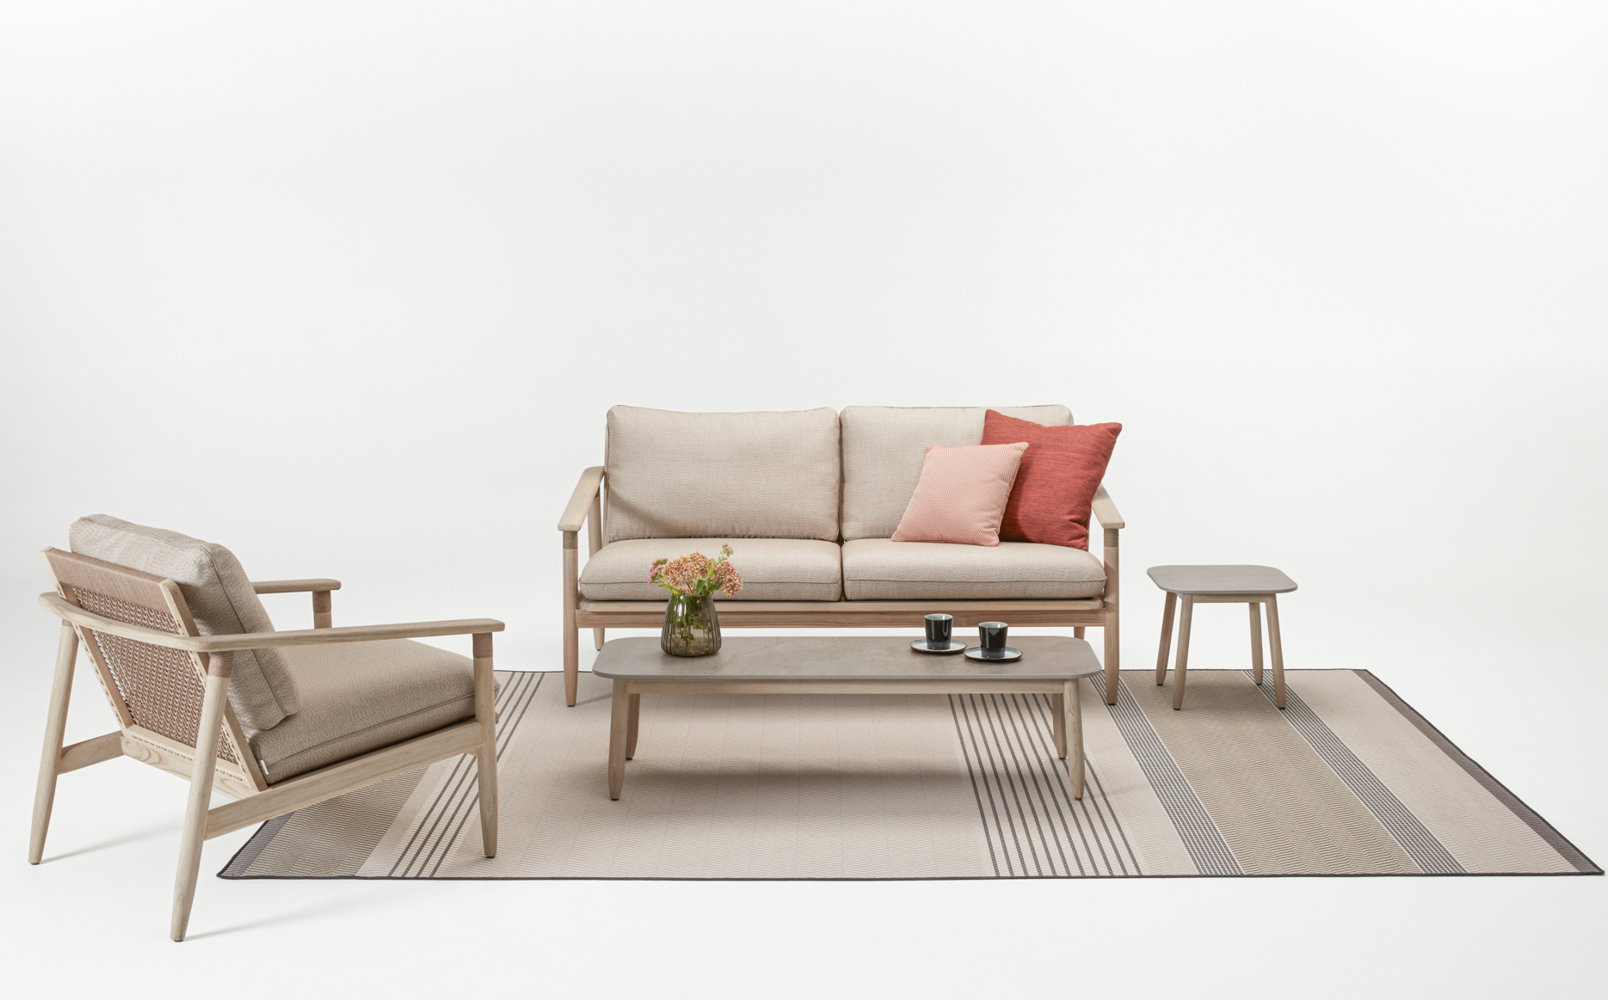 vincent-sheppard-david-lounge-sofa-lounge-chair-coffee-table-side-table-toundra-outdoor-rug